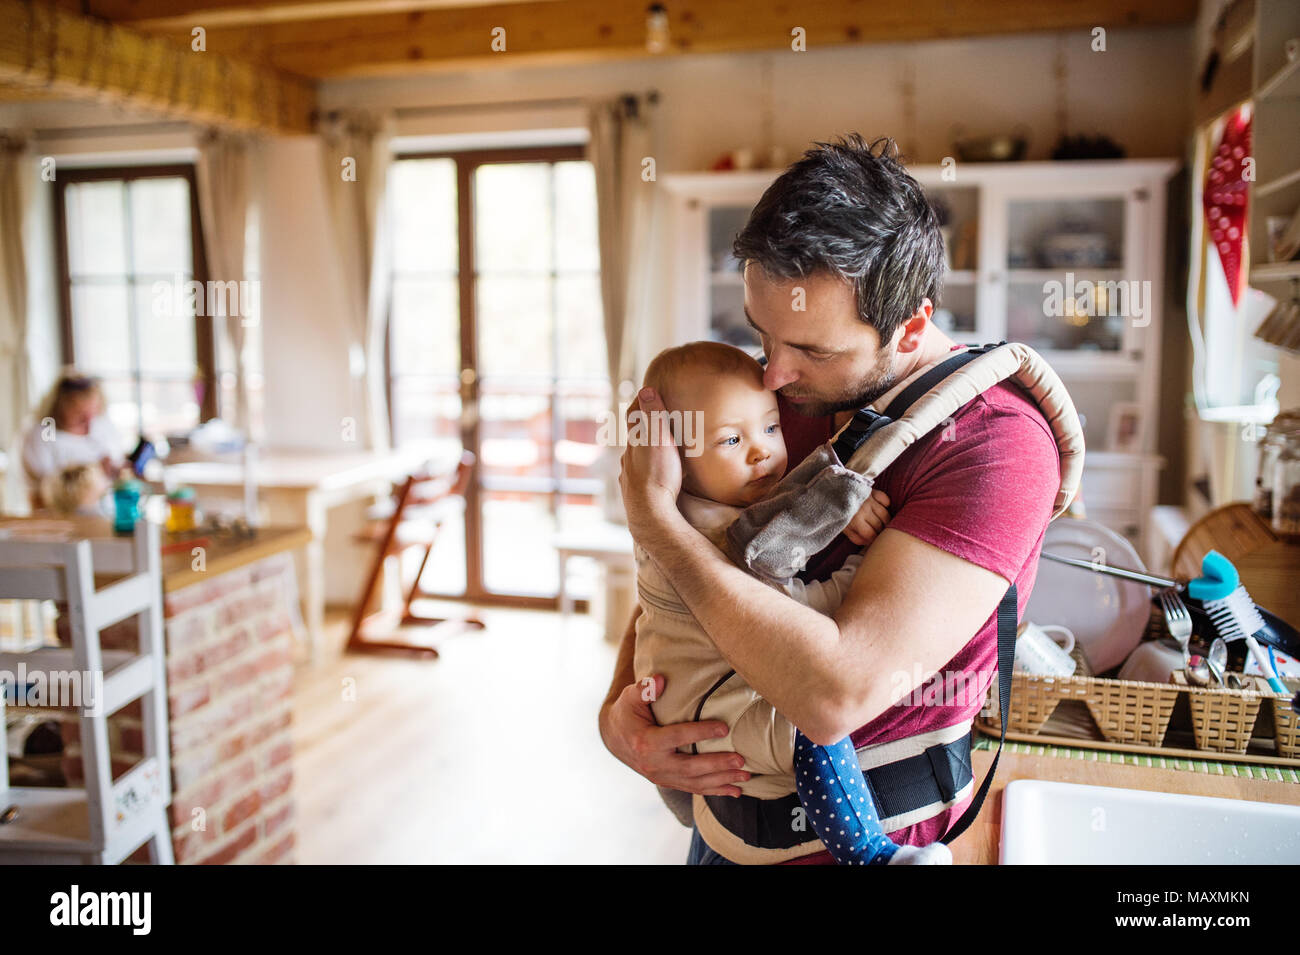 Father with a baby girl in a carrier at home. - Stock Image